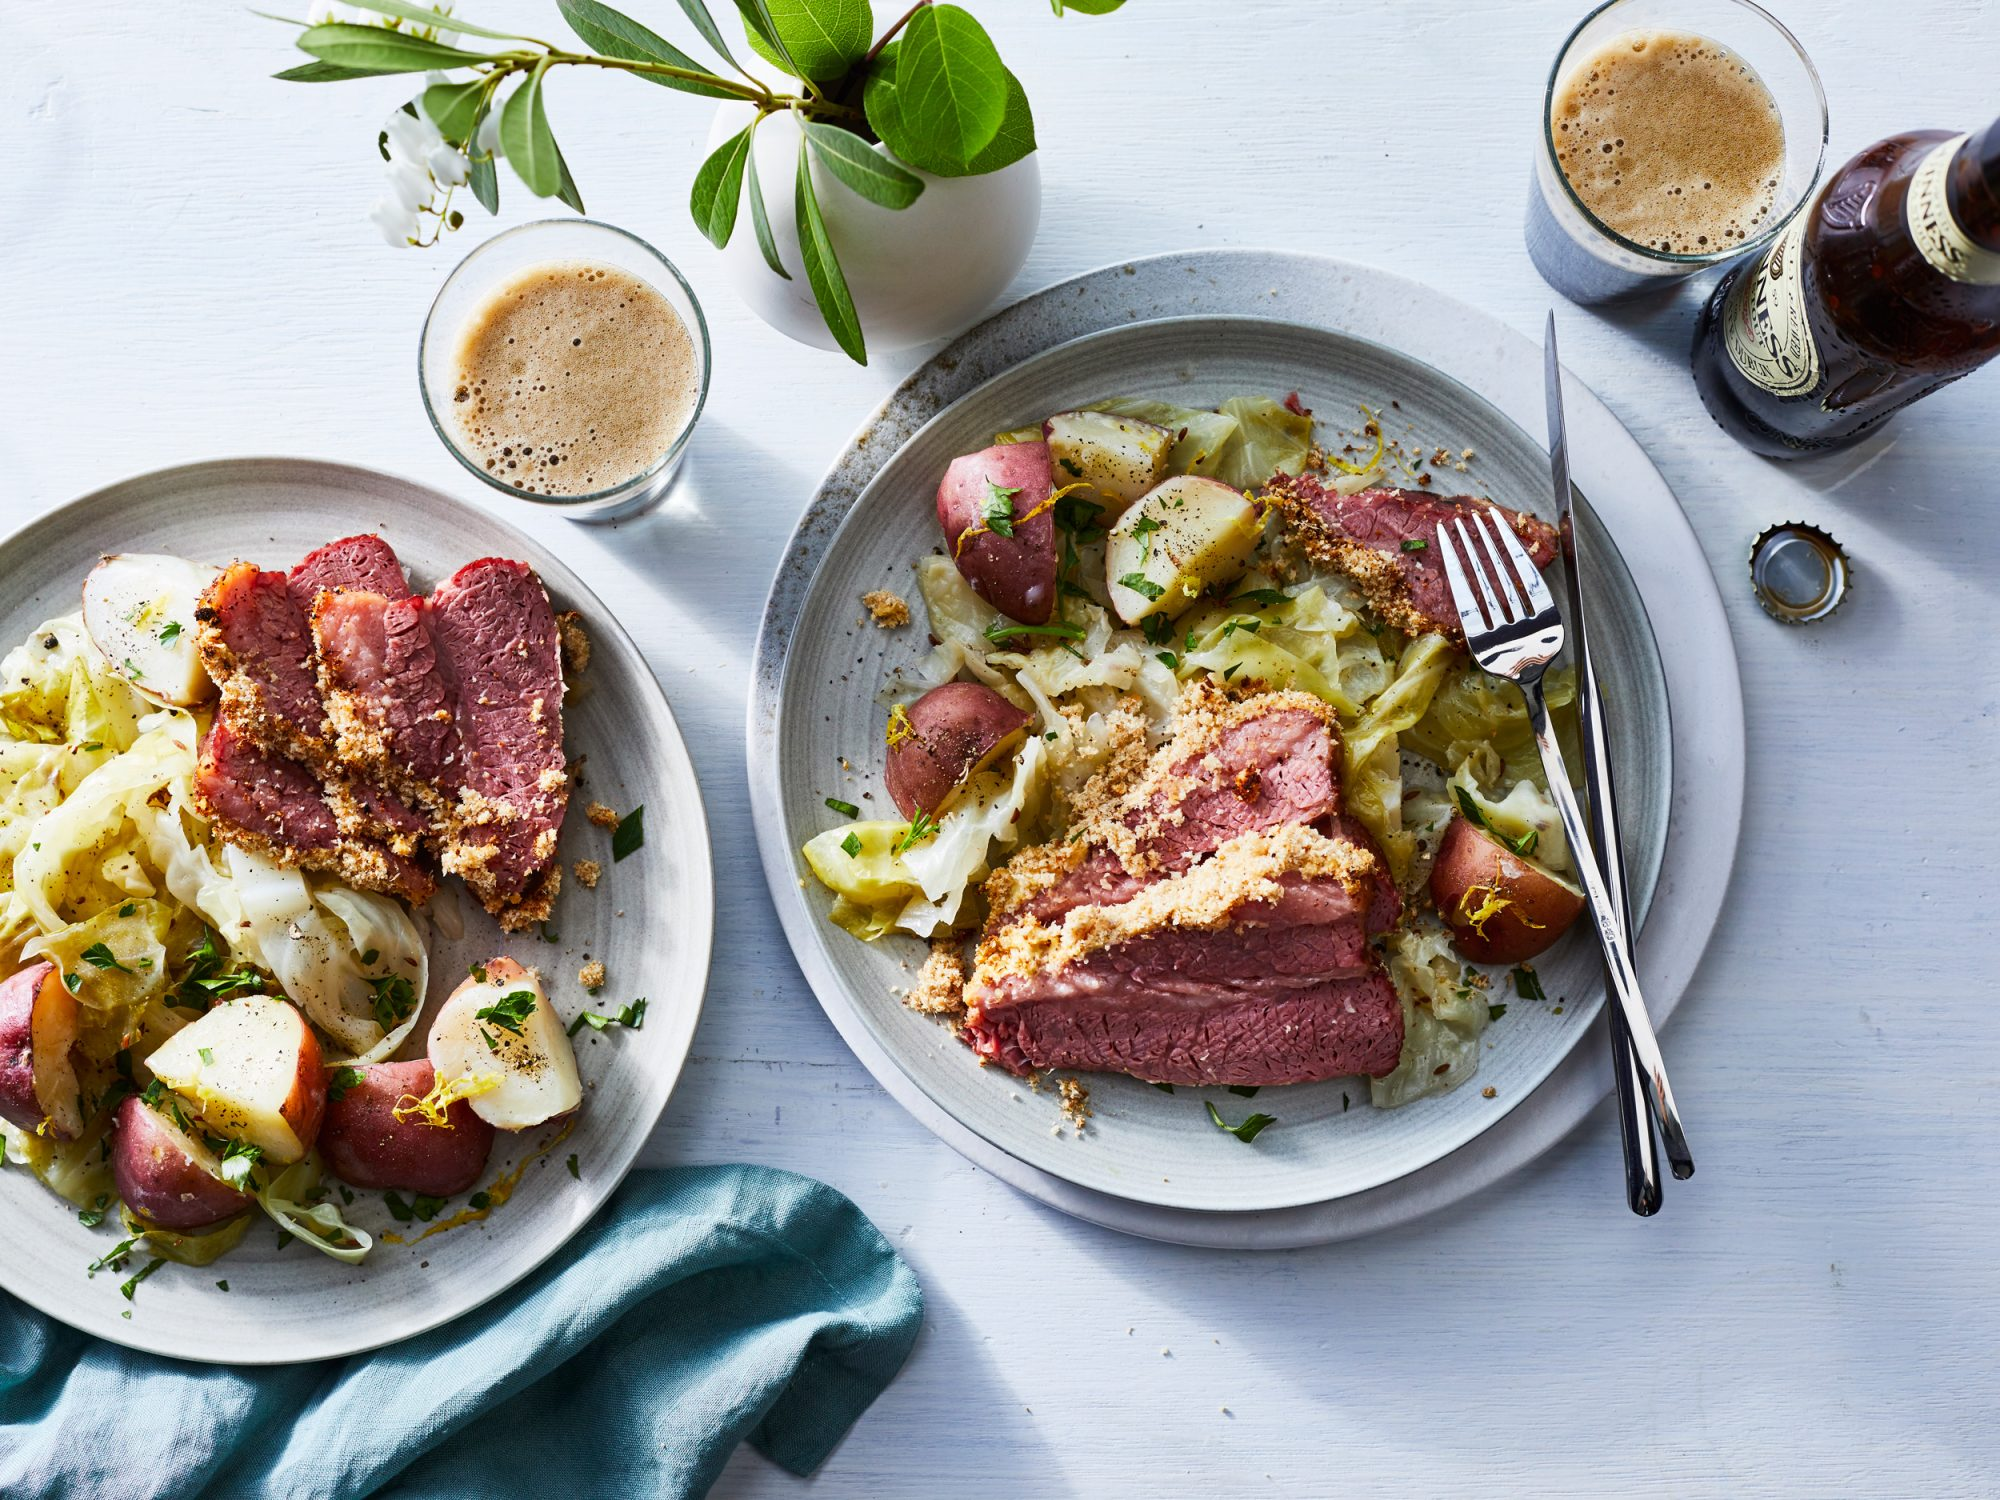 Corned Beef and Cabbage Dinner image